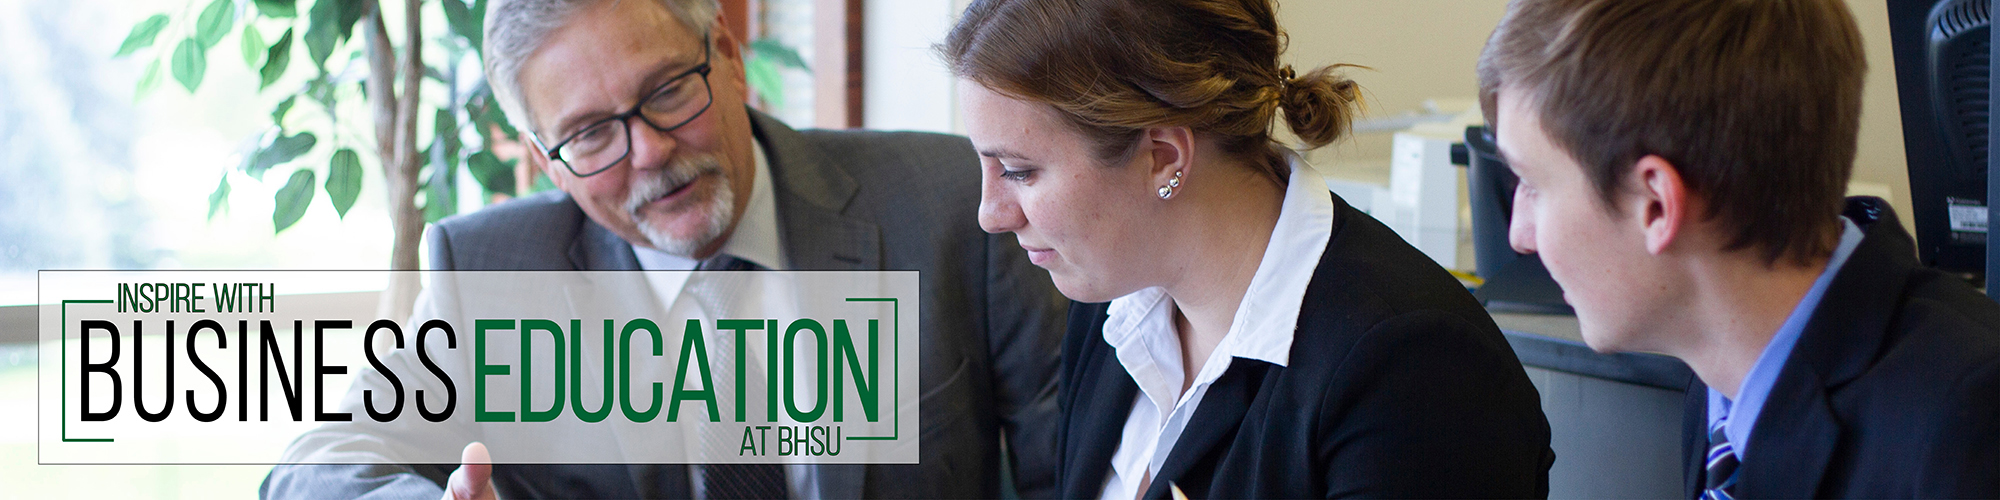 Business Education at BHSU